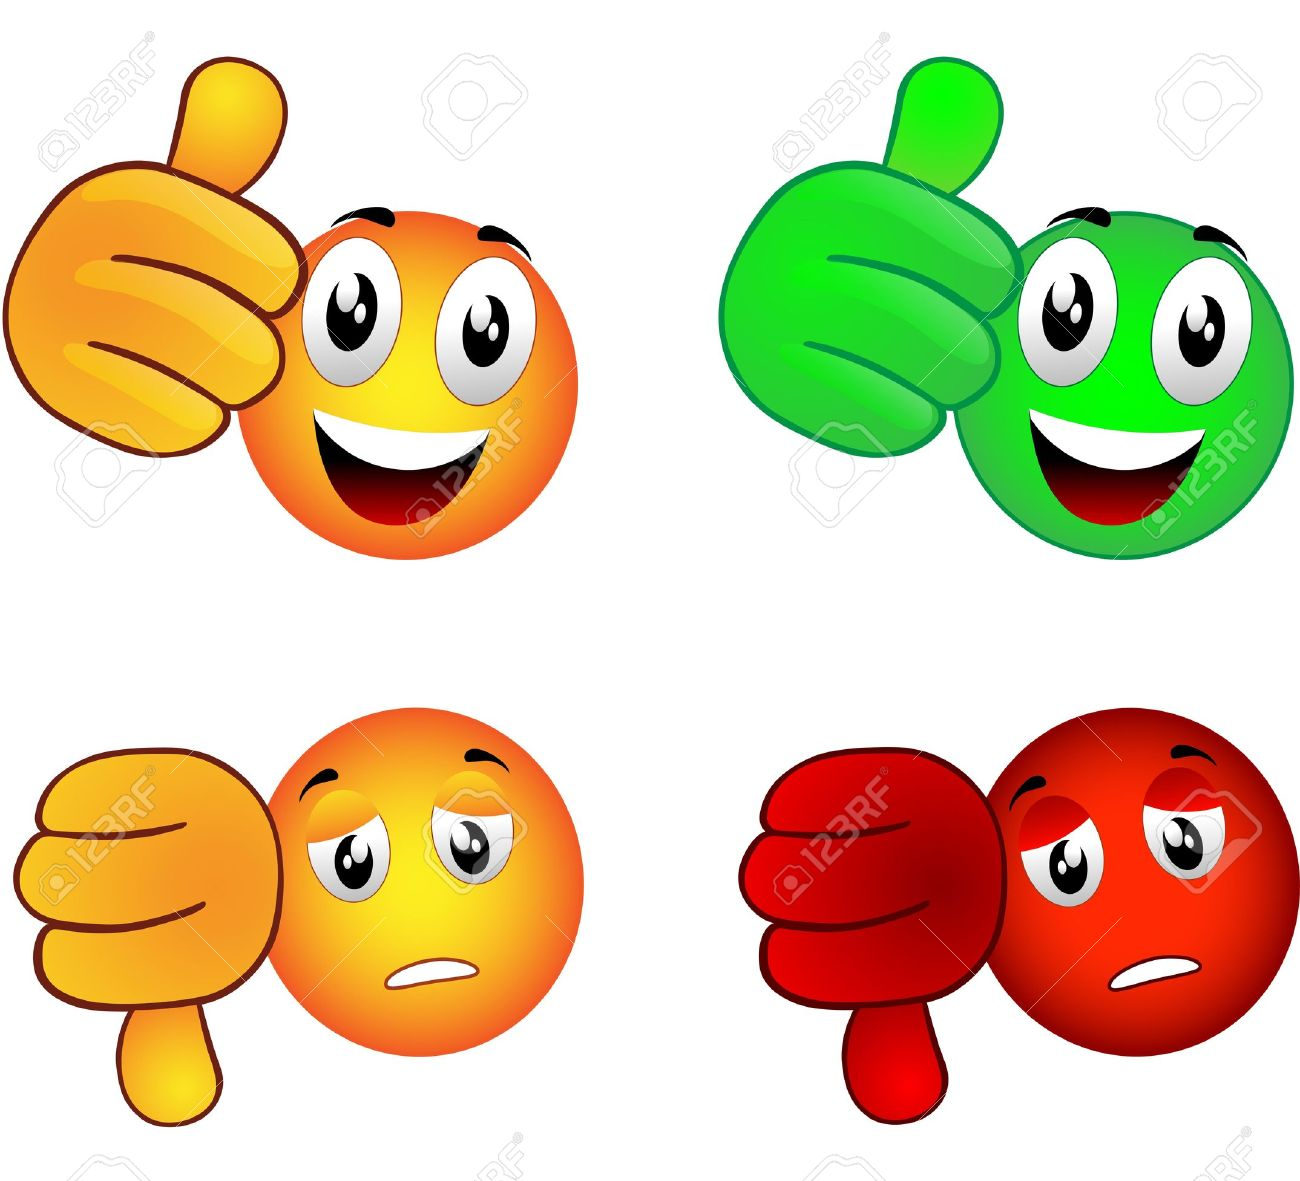 Smiley which raises the inch Stock Vector - 20440101